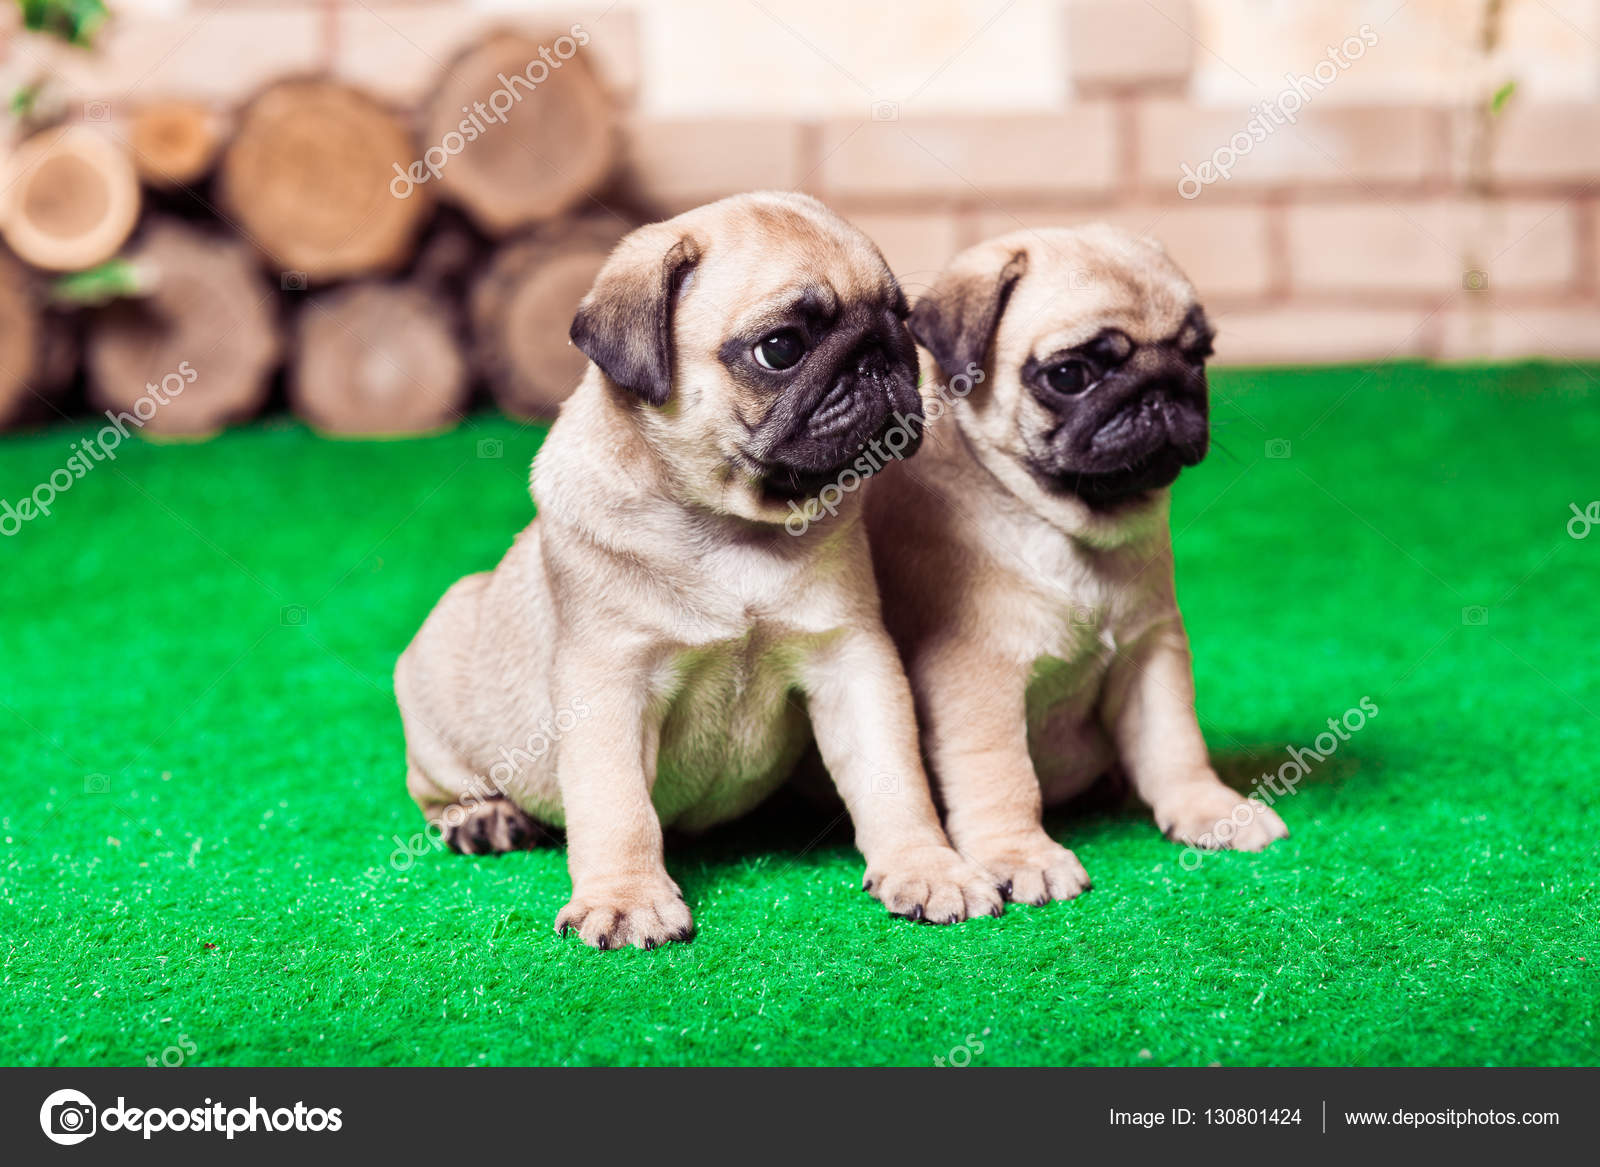 Little Beige Pug Puppies Sitting On The Green Grass Against The Stock Photo C Favorekyiv Gmail Com 130801424